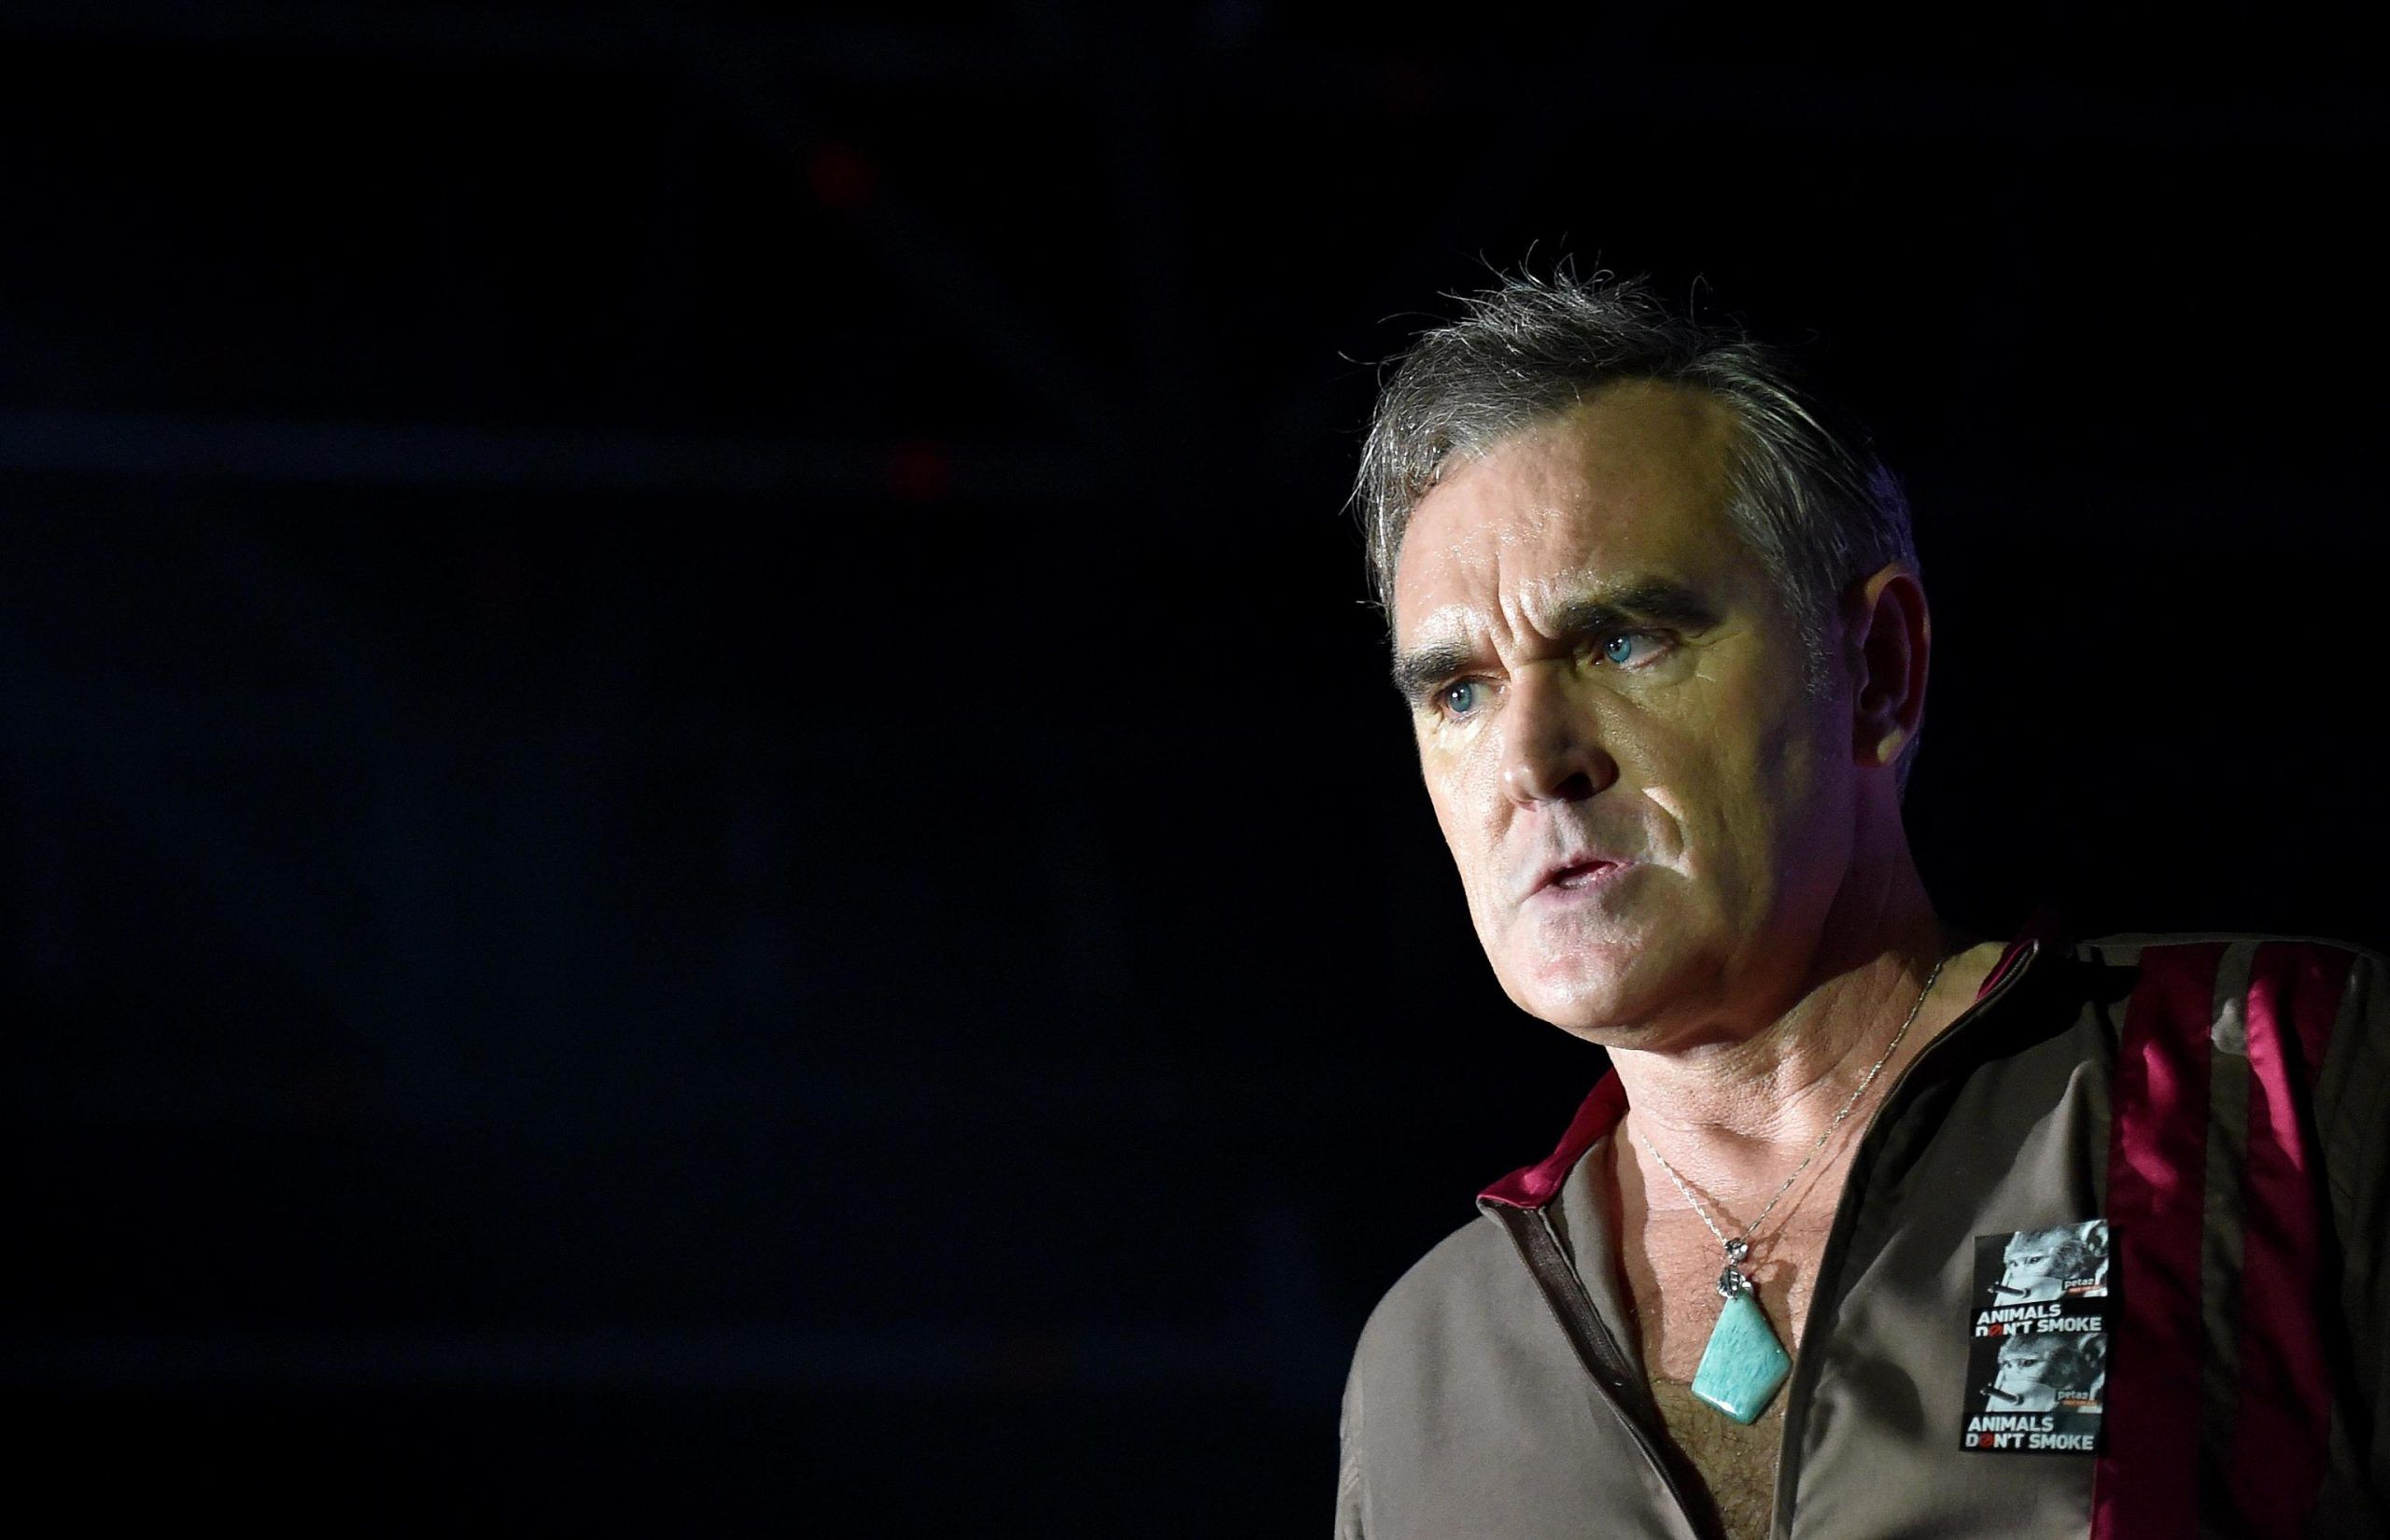 Former Smiths frontman Morrissey performs on stage